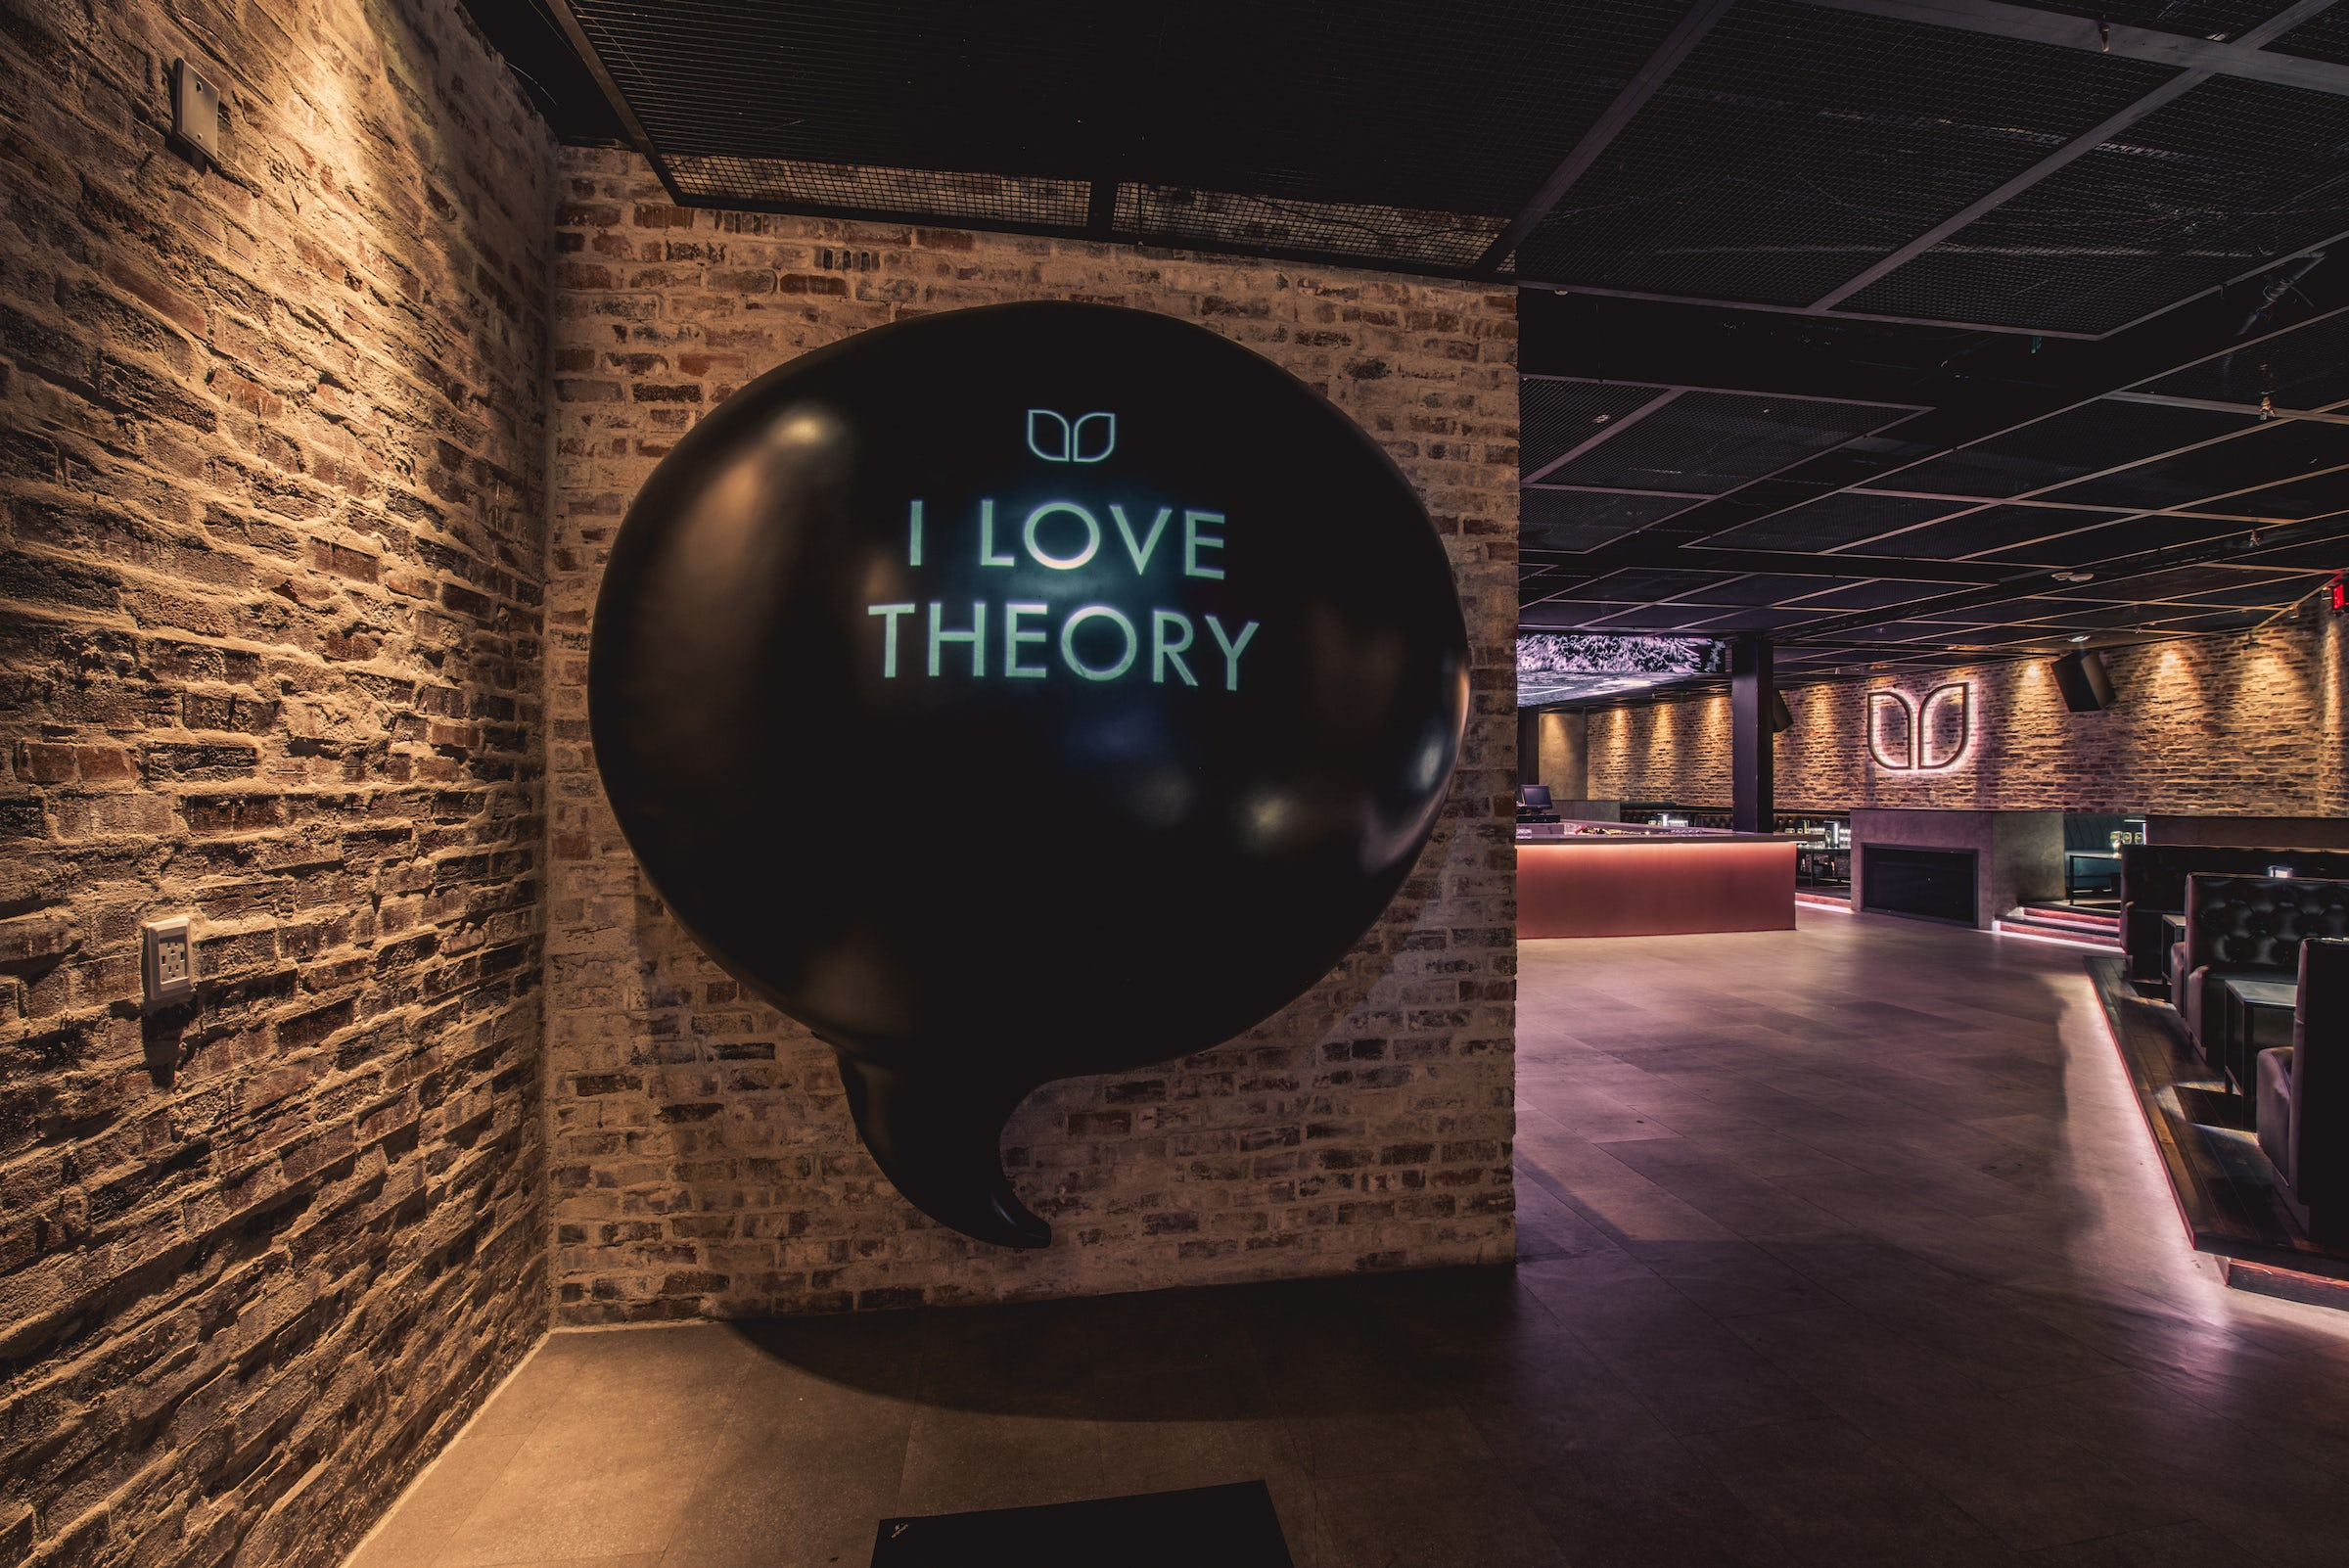 Theory Uptown in Beyond Dallas